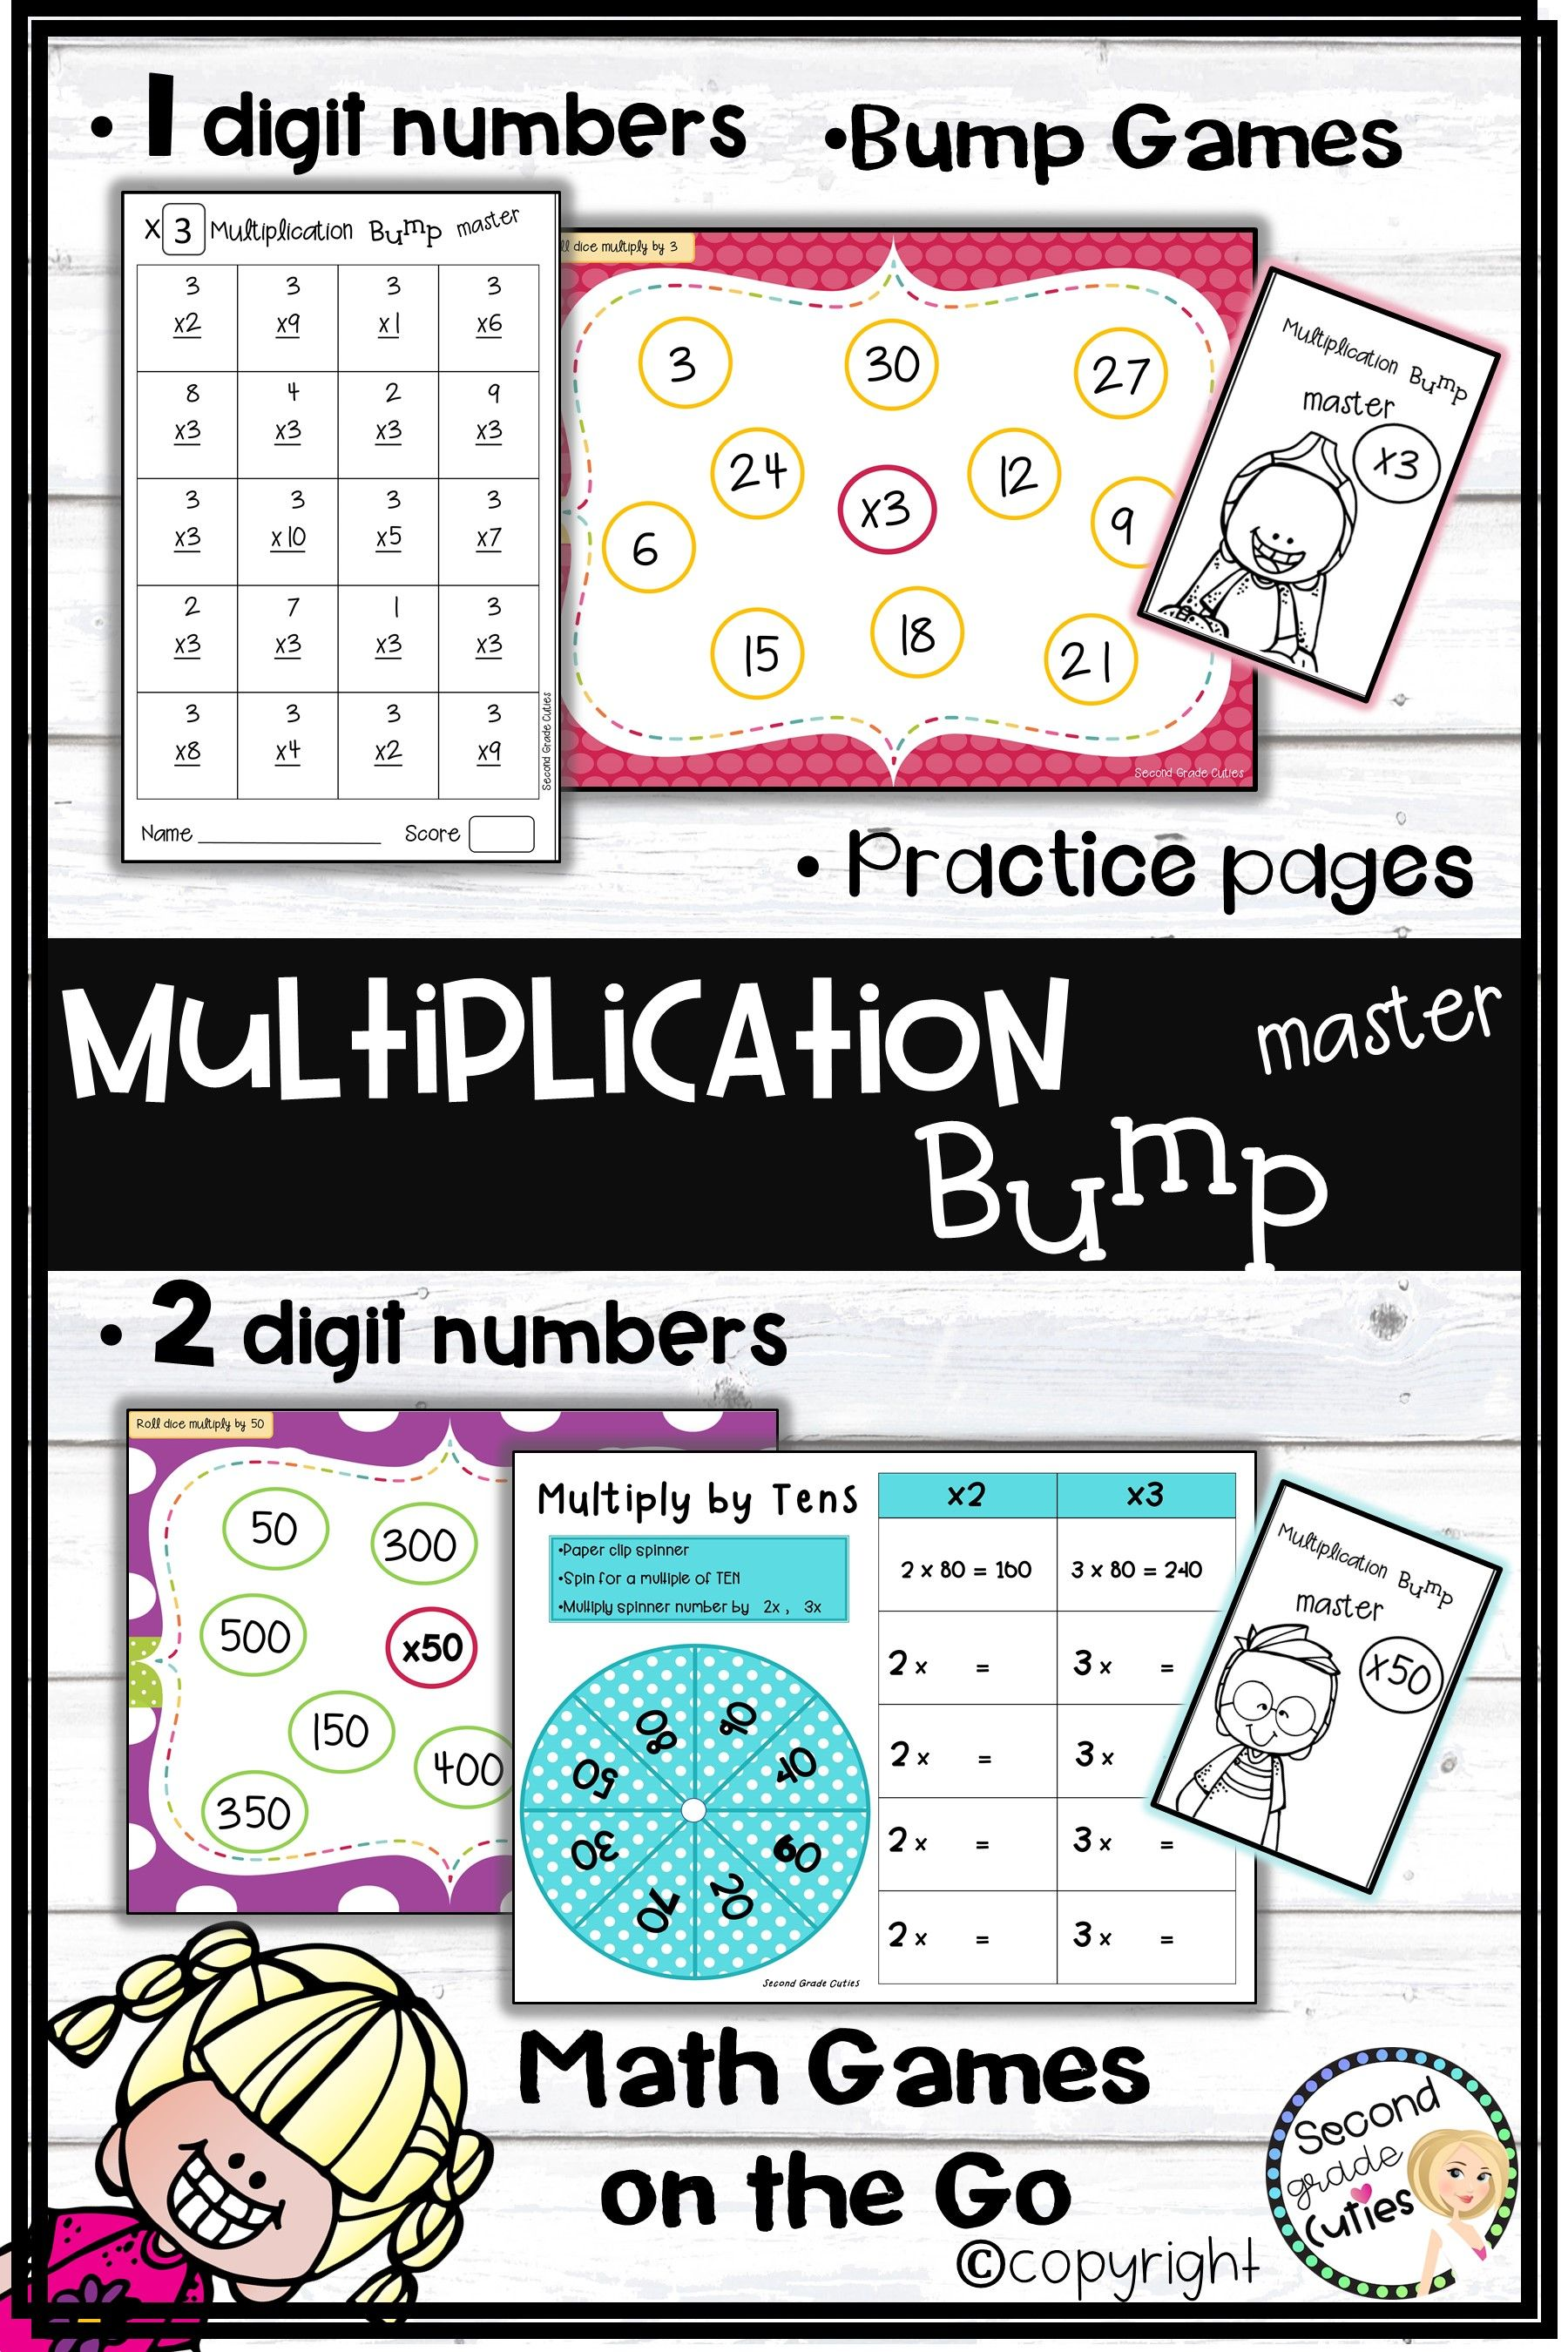 These Bump Board Games Are Perfect For Daily Practice In